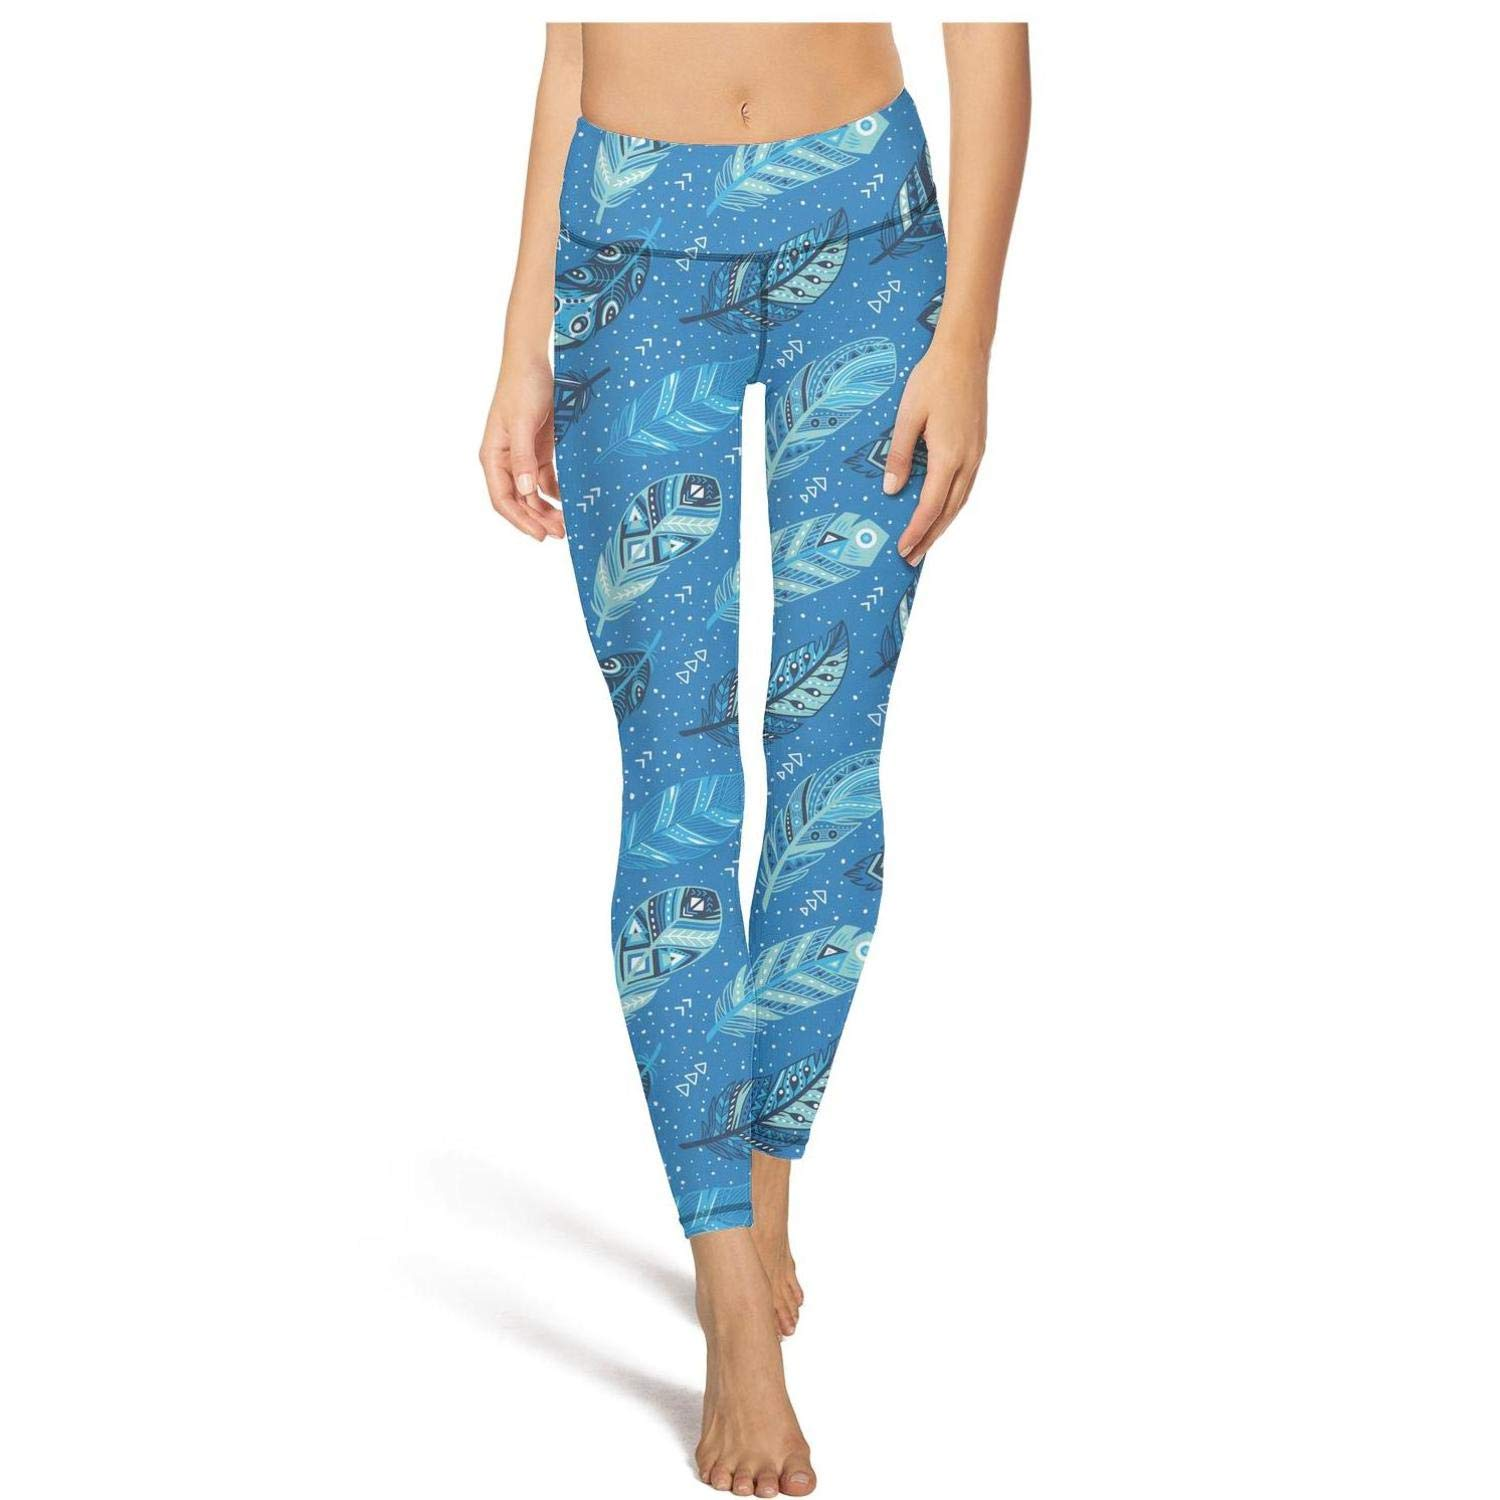 AugGThomas Womens Tribal Blue Feathers Workout Running Legging Tummy Control Stretch Yoga Pants with Pockets